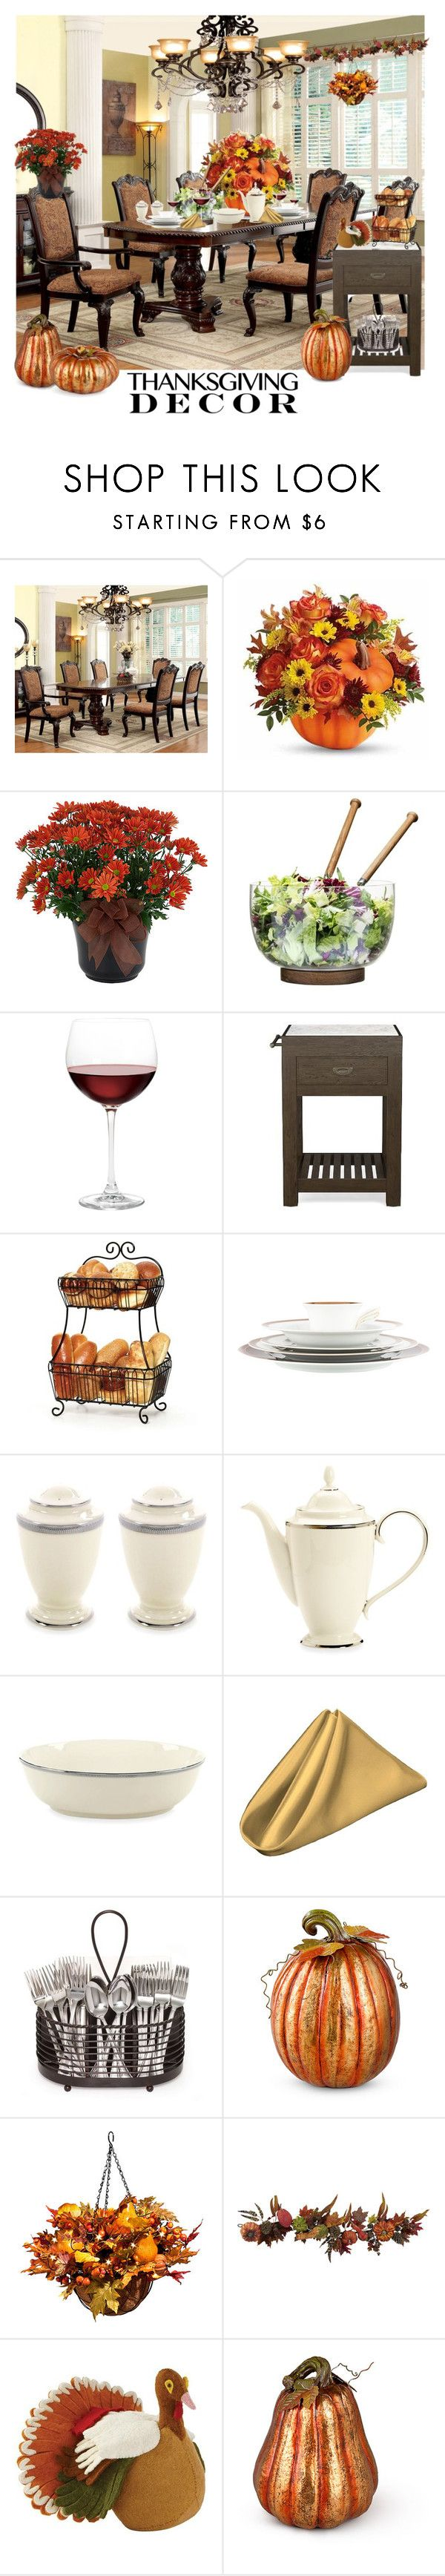 """""""Ready For Thanksgiving!"""" by bevmardesigns ❤ liked on Polyvore featuring interior, interiors, interior design, home, home decor, interior decorating, Furniture of America, Sagaform, Nordstrom and Williams-Sonoma"""